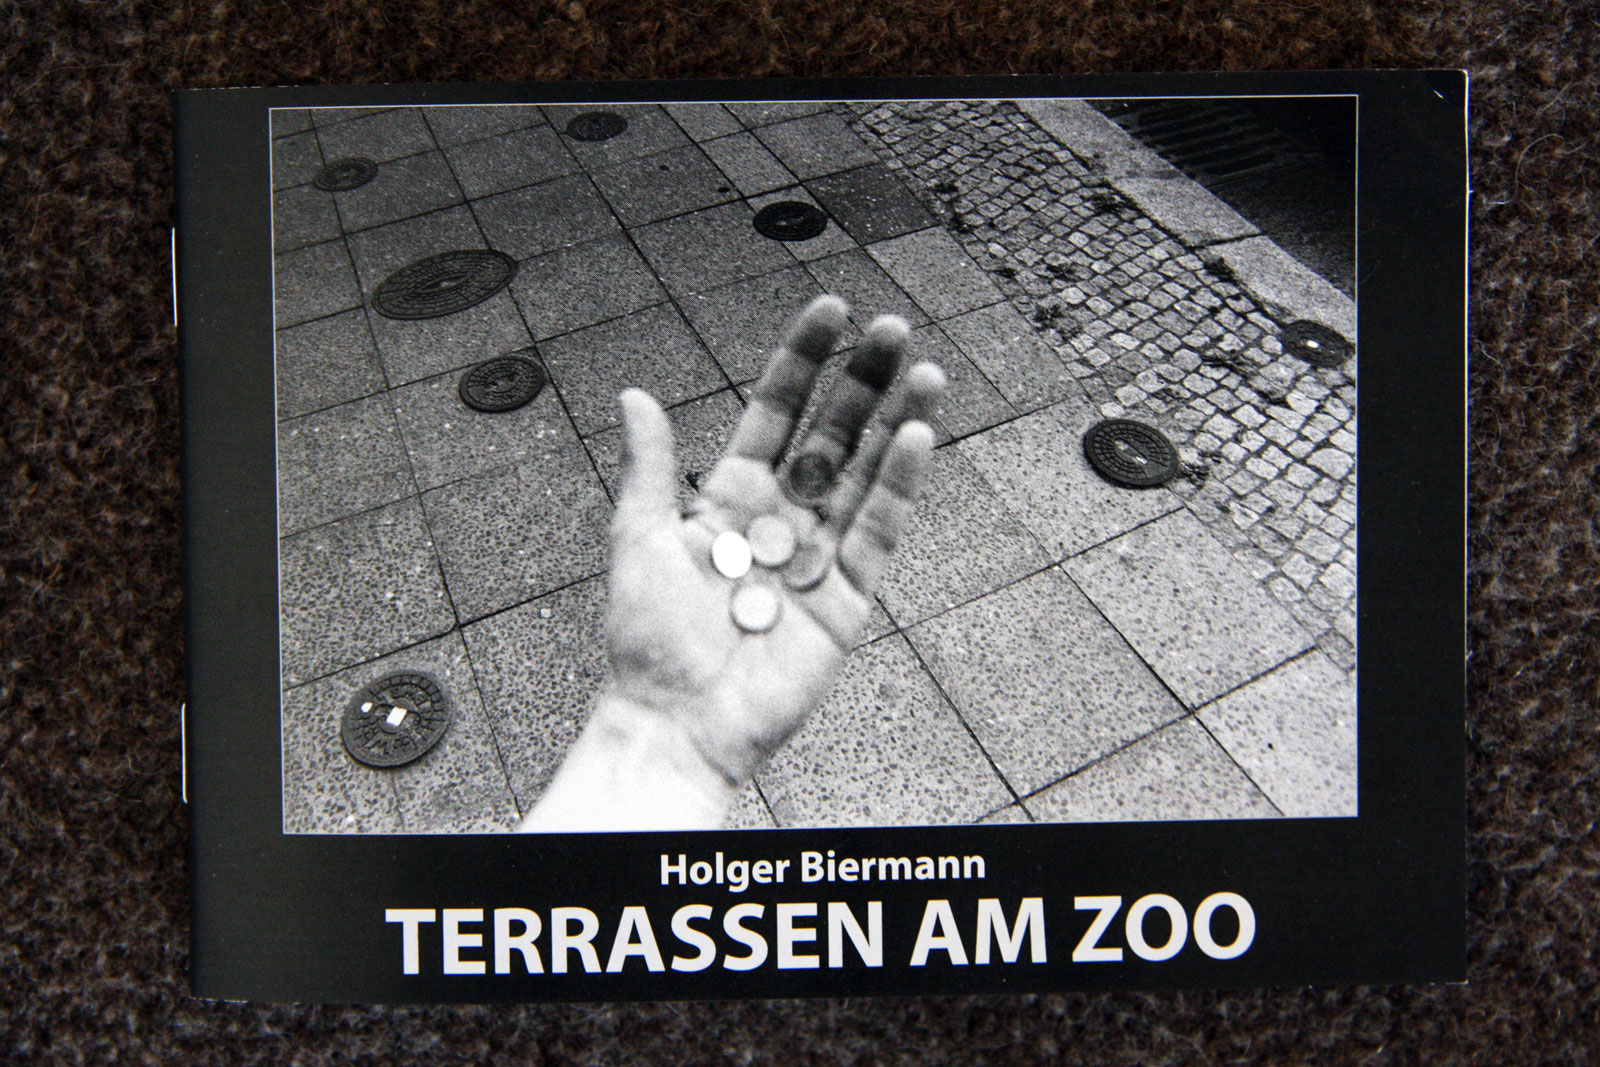 New Booklet : TERRASSEN AM ZOO by Holger Biermann